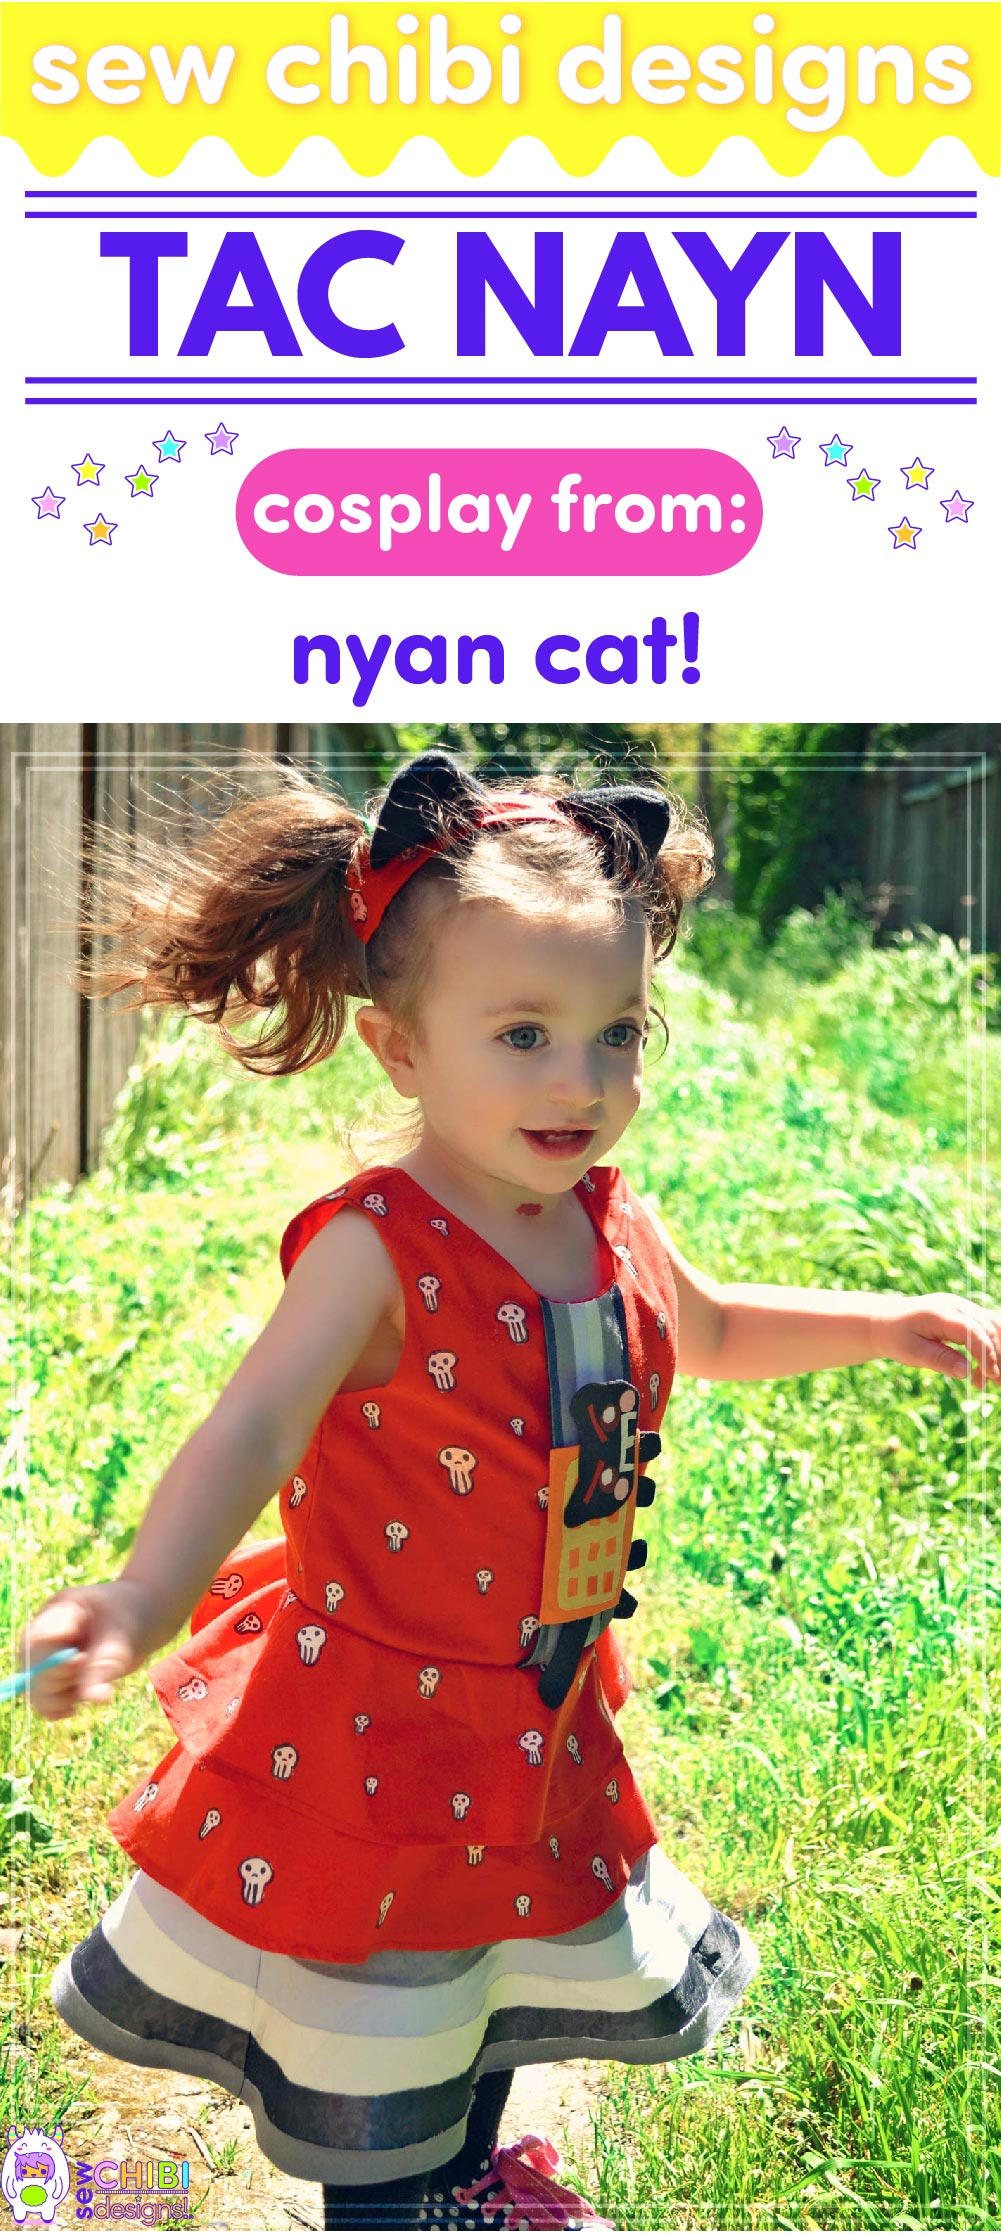 Nyan Cat and Tac Nayn chibi cosplay from Nyan Cat sewn by Sew Chibi Designs for Sew Geeky